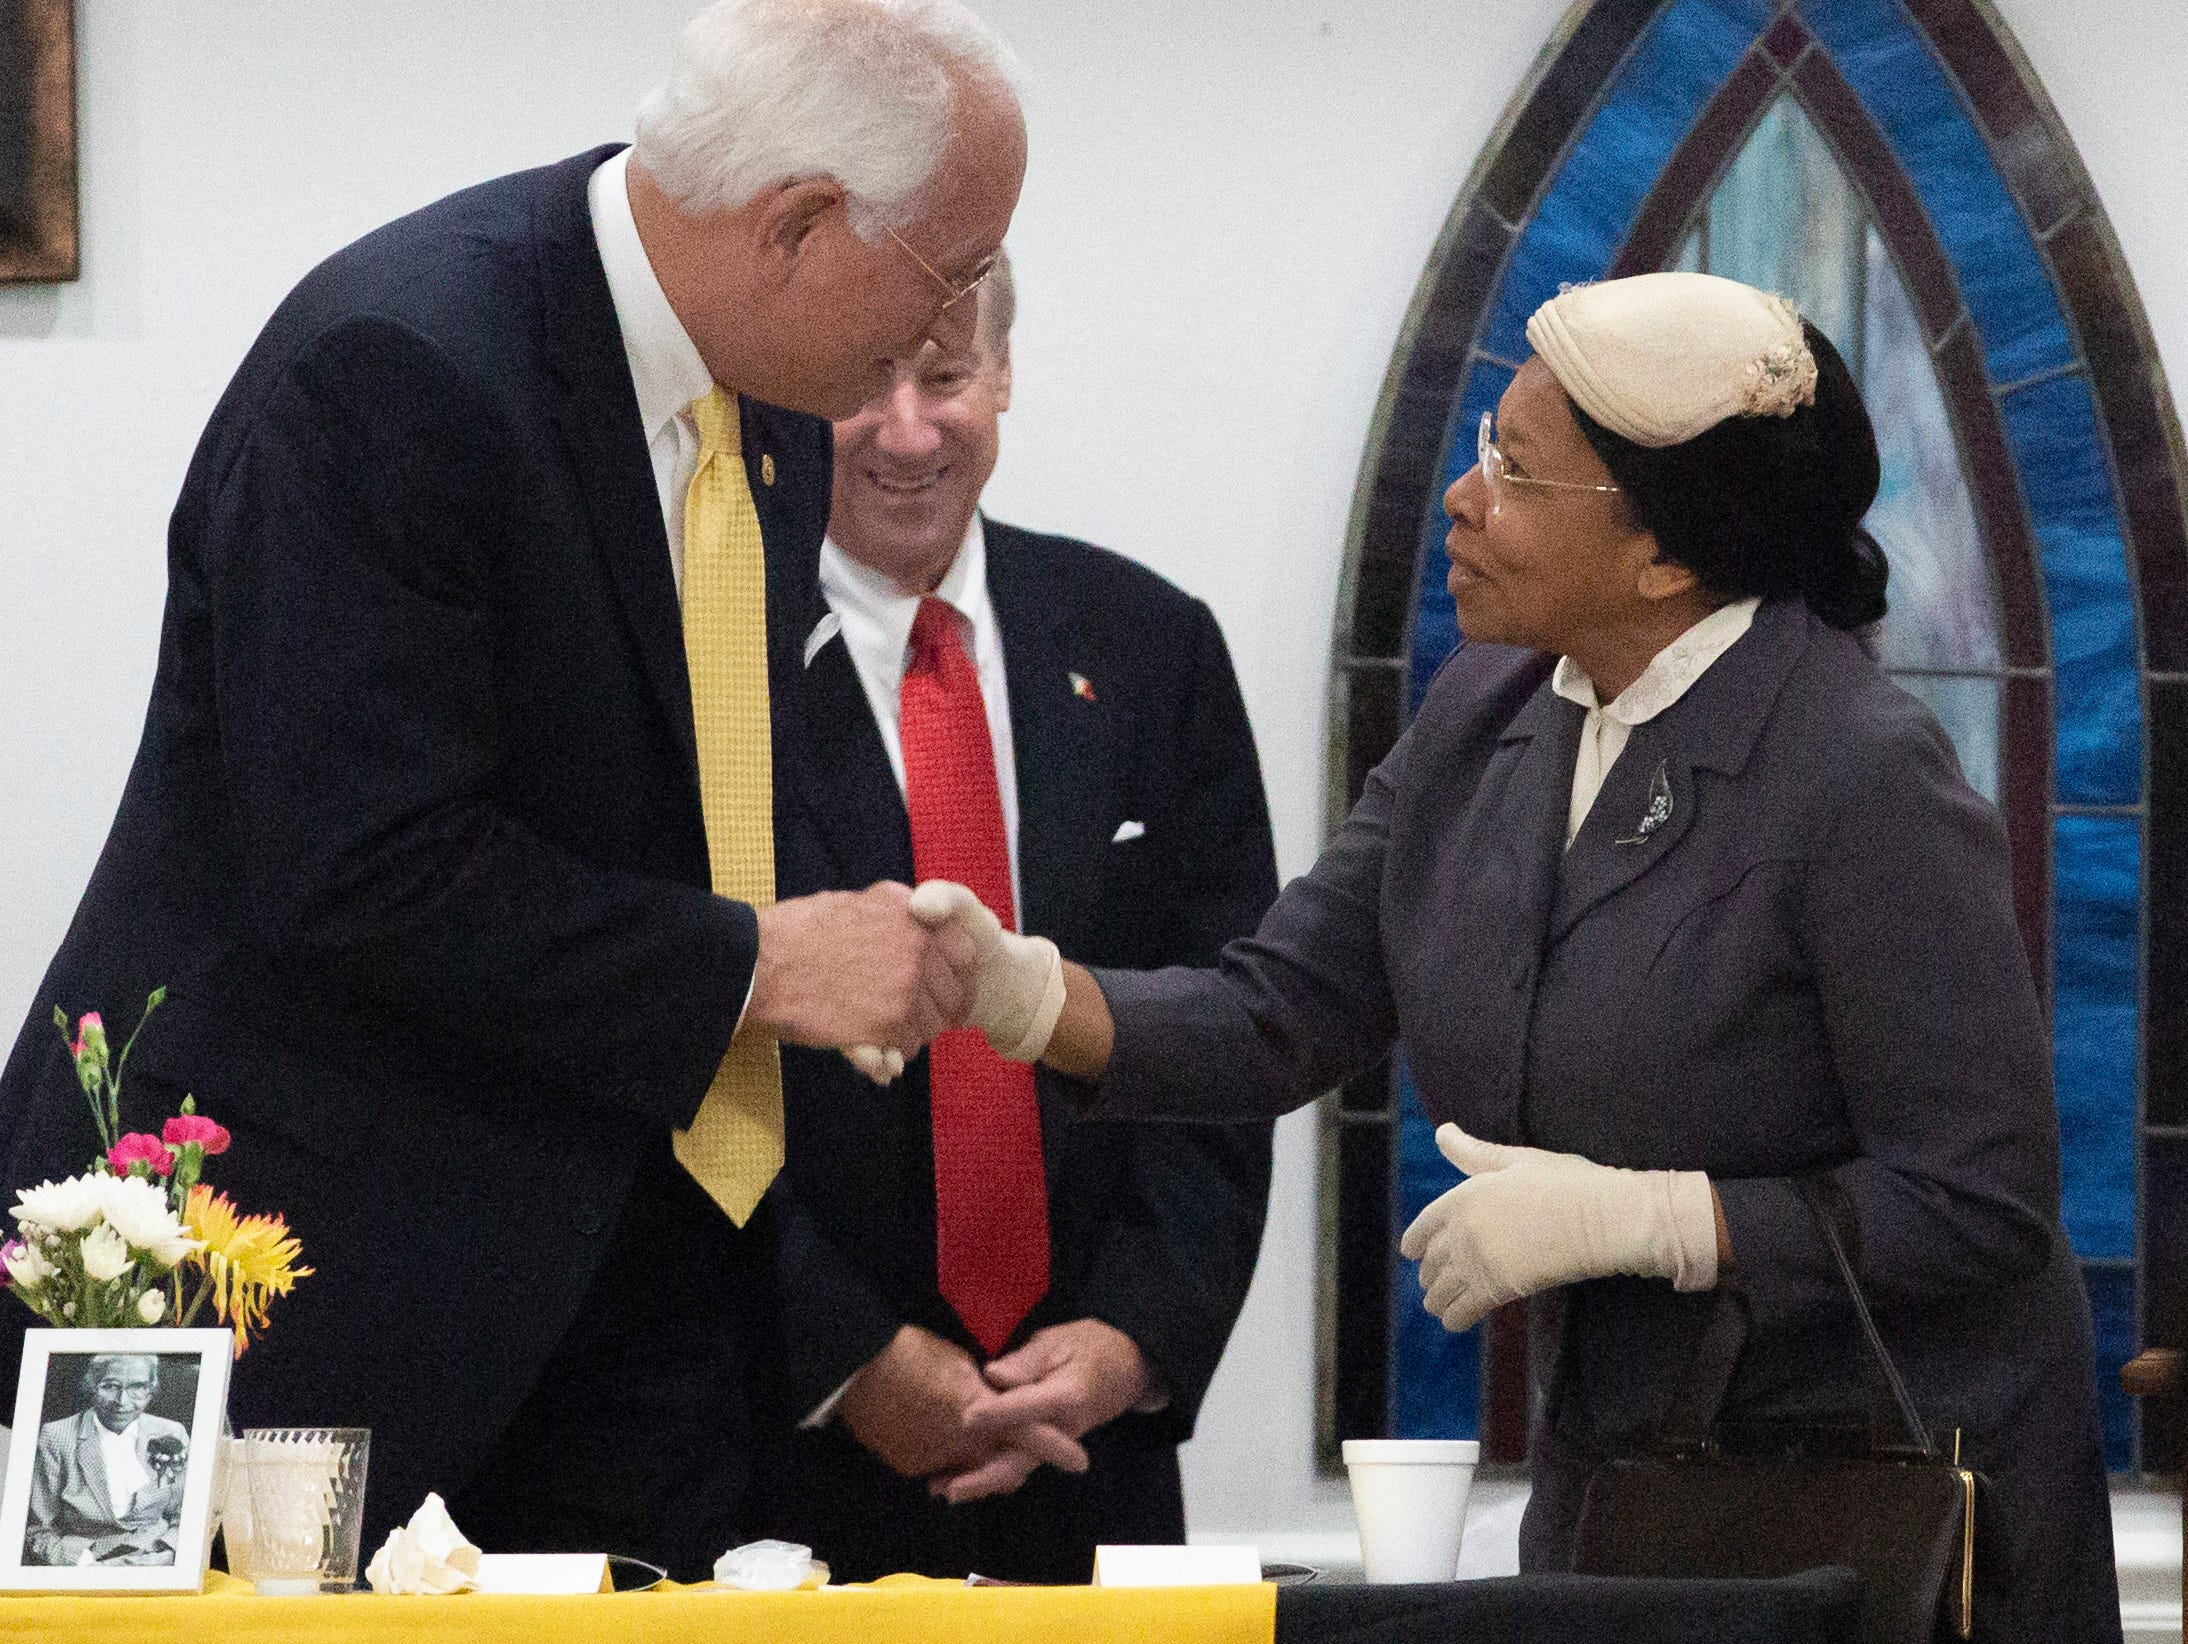 Anne Clemons portrays Rosa Parks during a unity breakfast at St. Paul AME church.